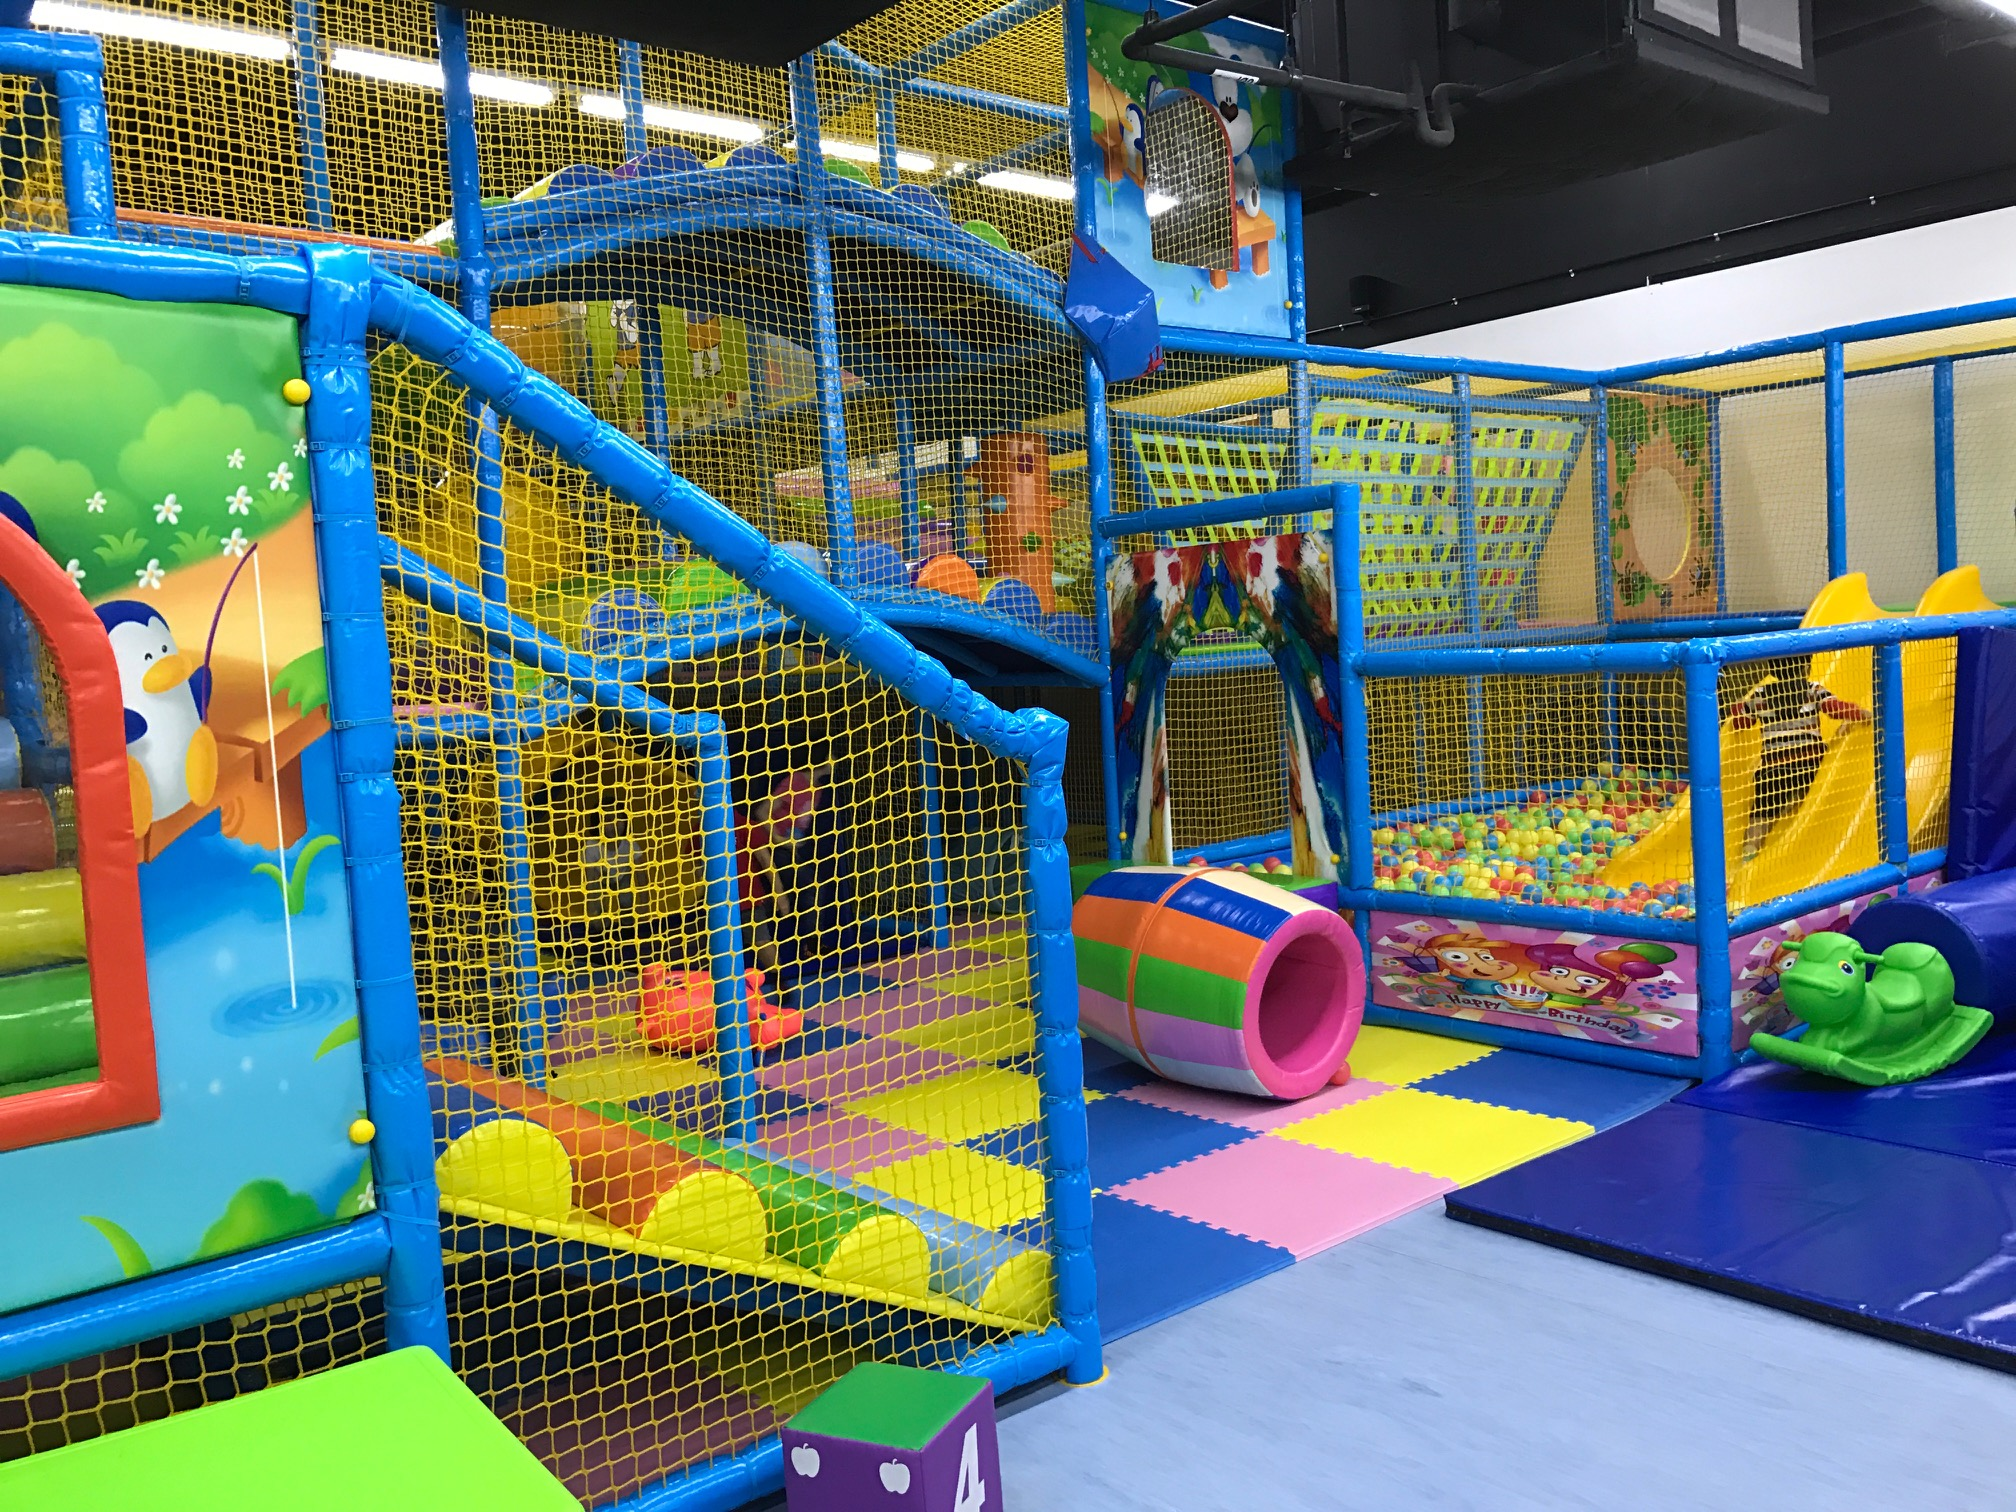 Bearyfun Gym Indoor Playground and Trampoline Park at Changi